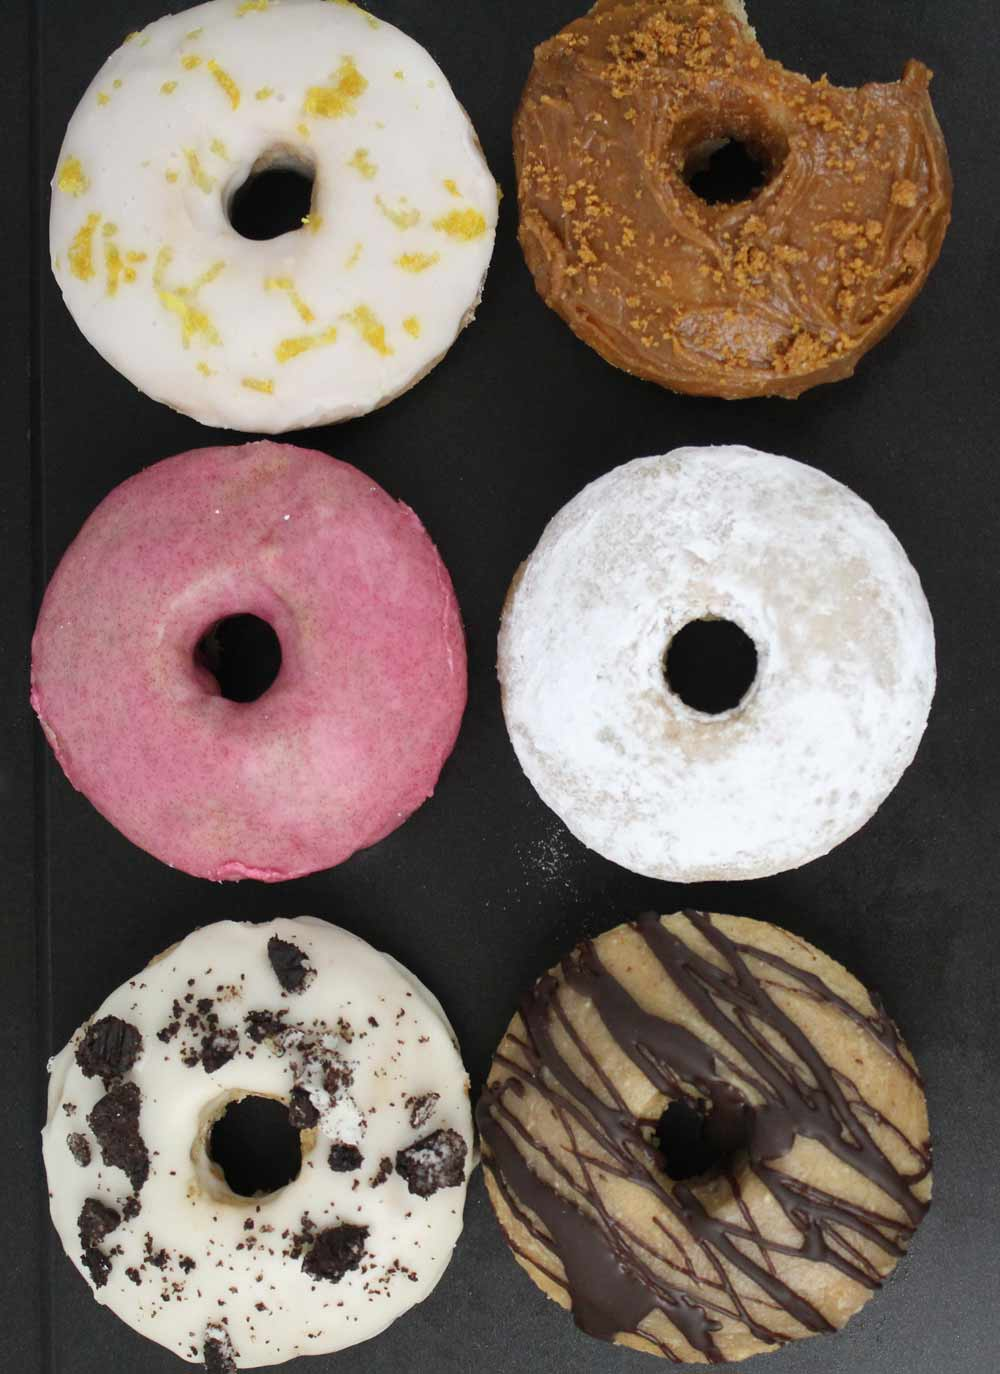 6 donuts on a tray